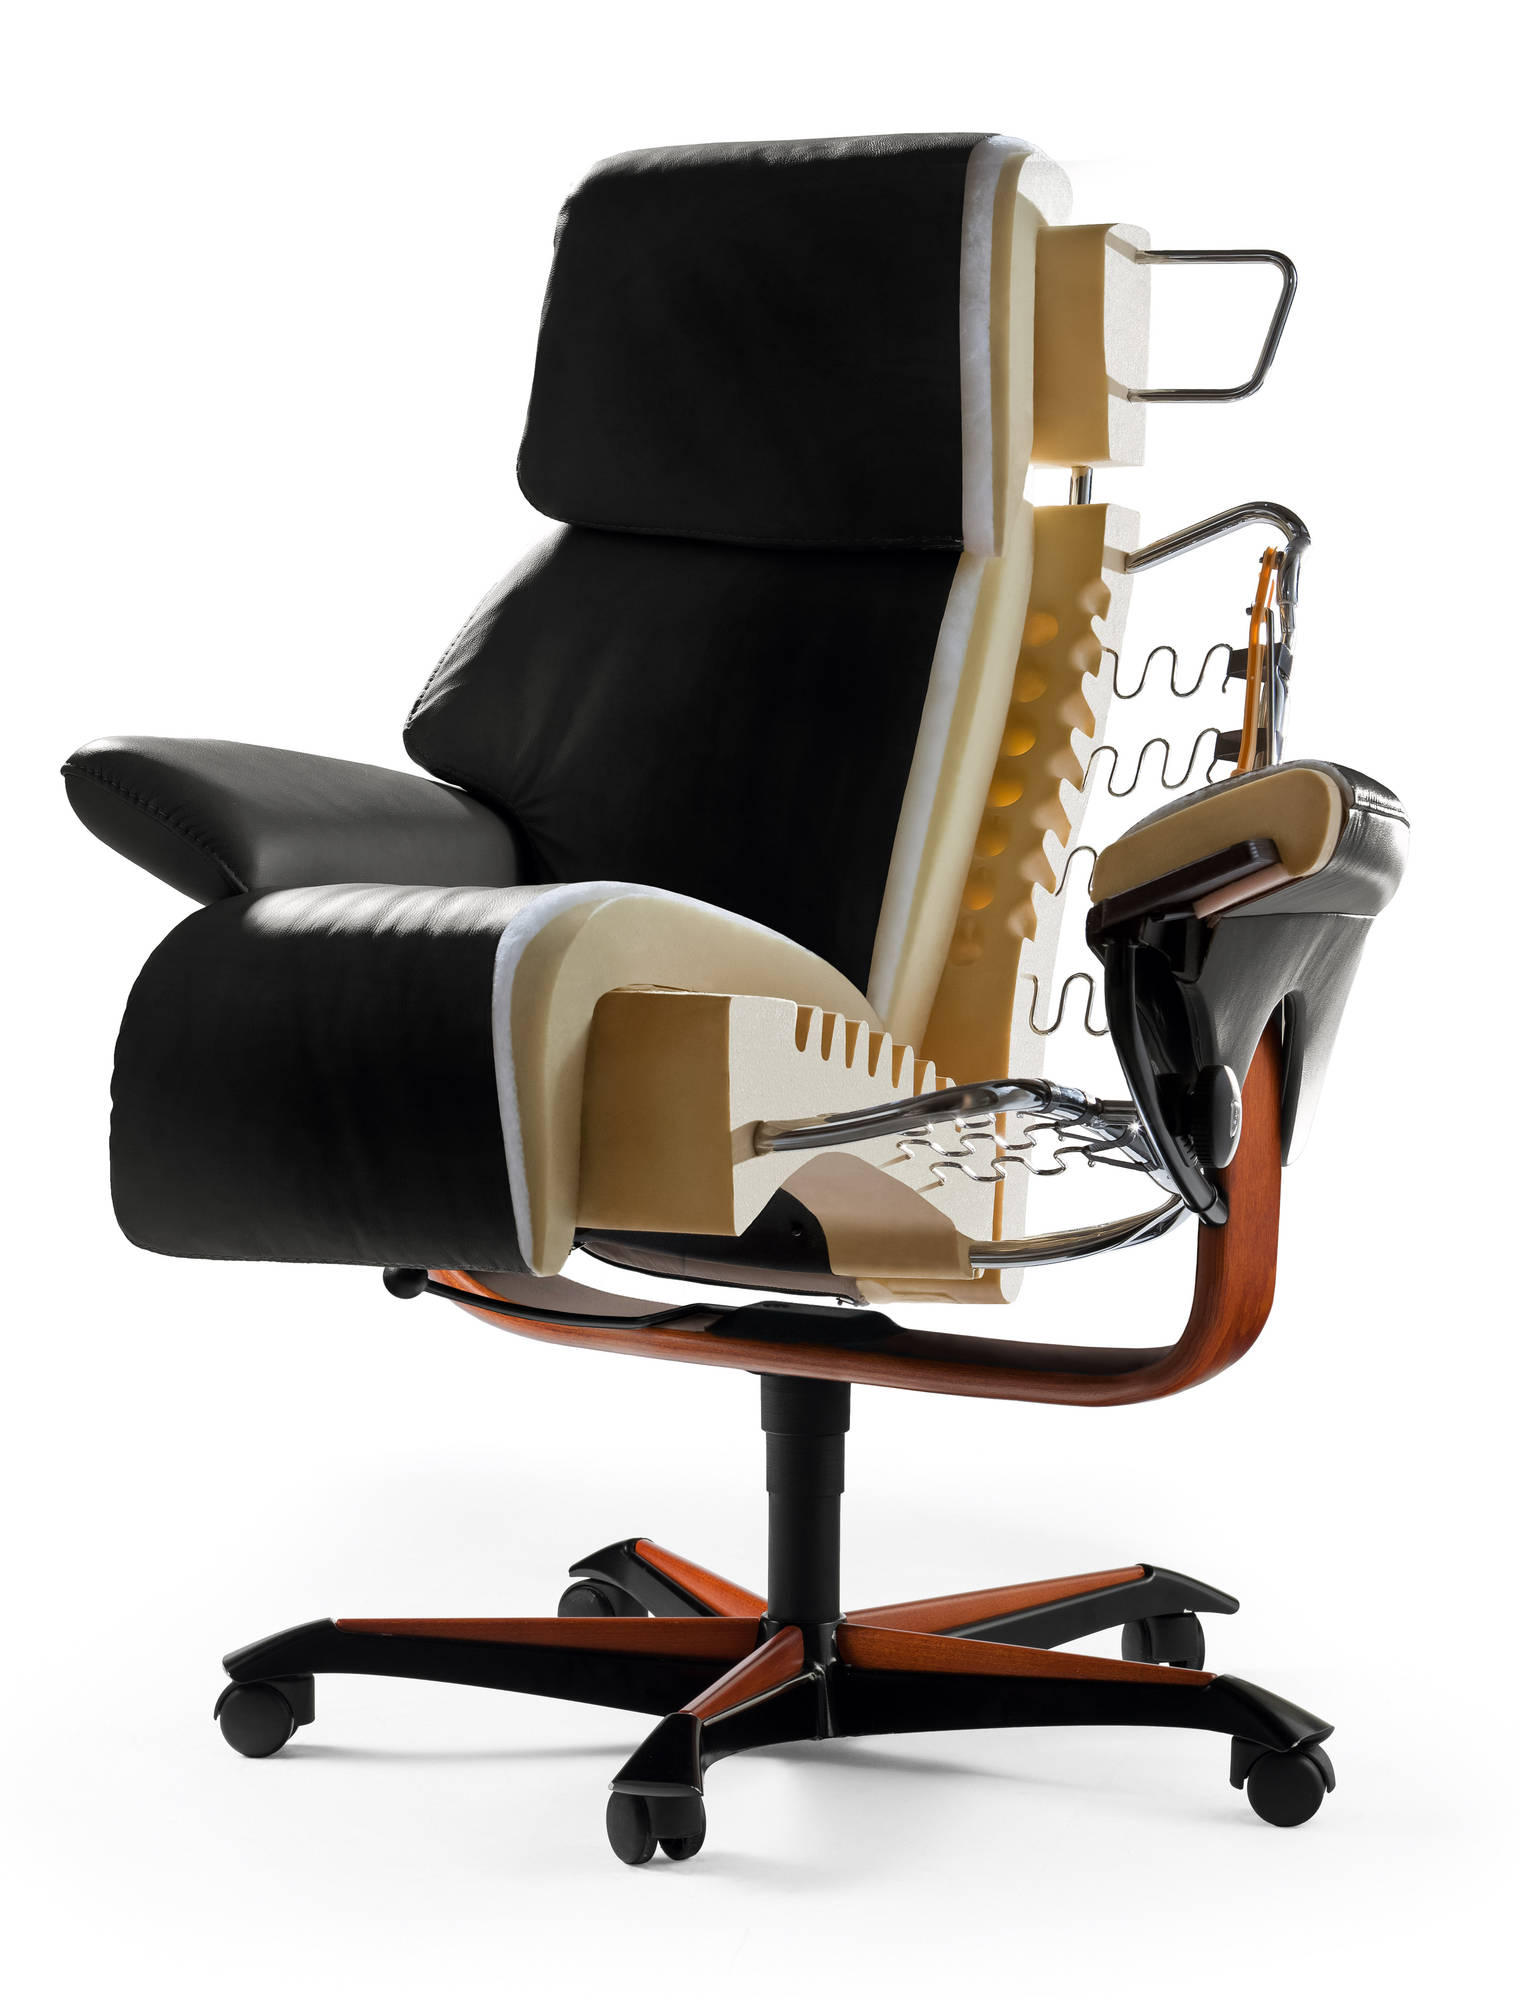 Stressless Office- Comfort of the Future